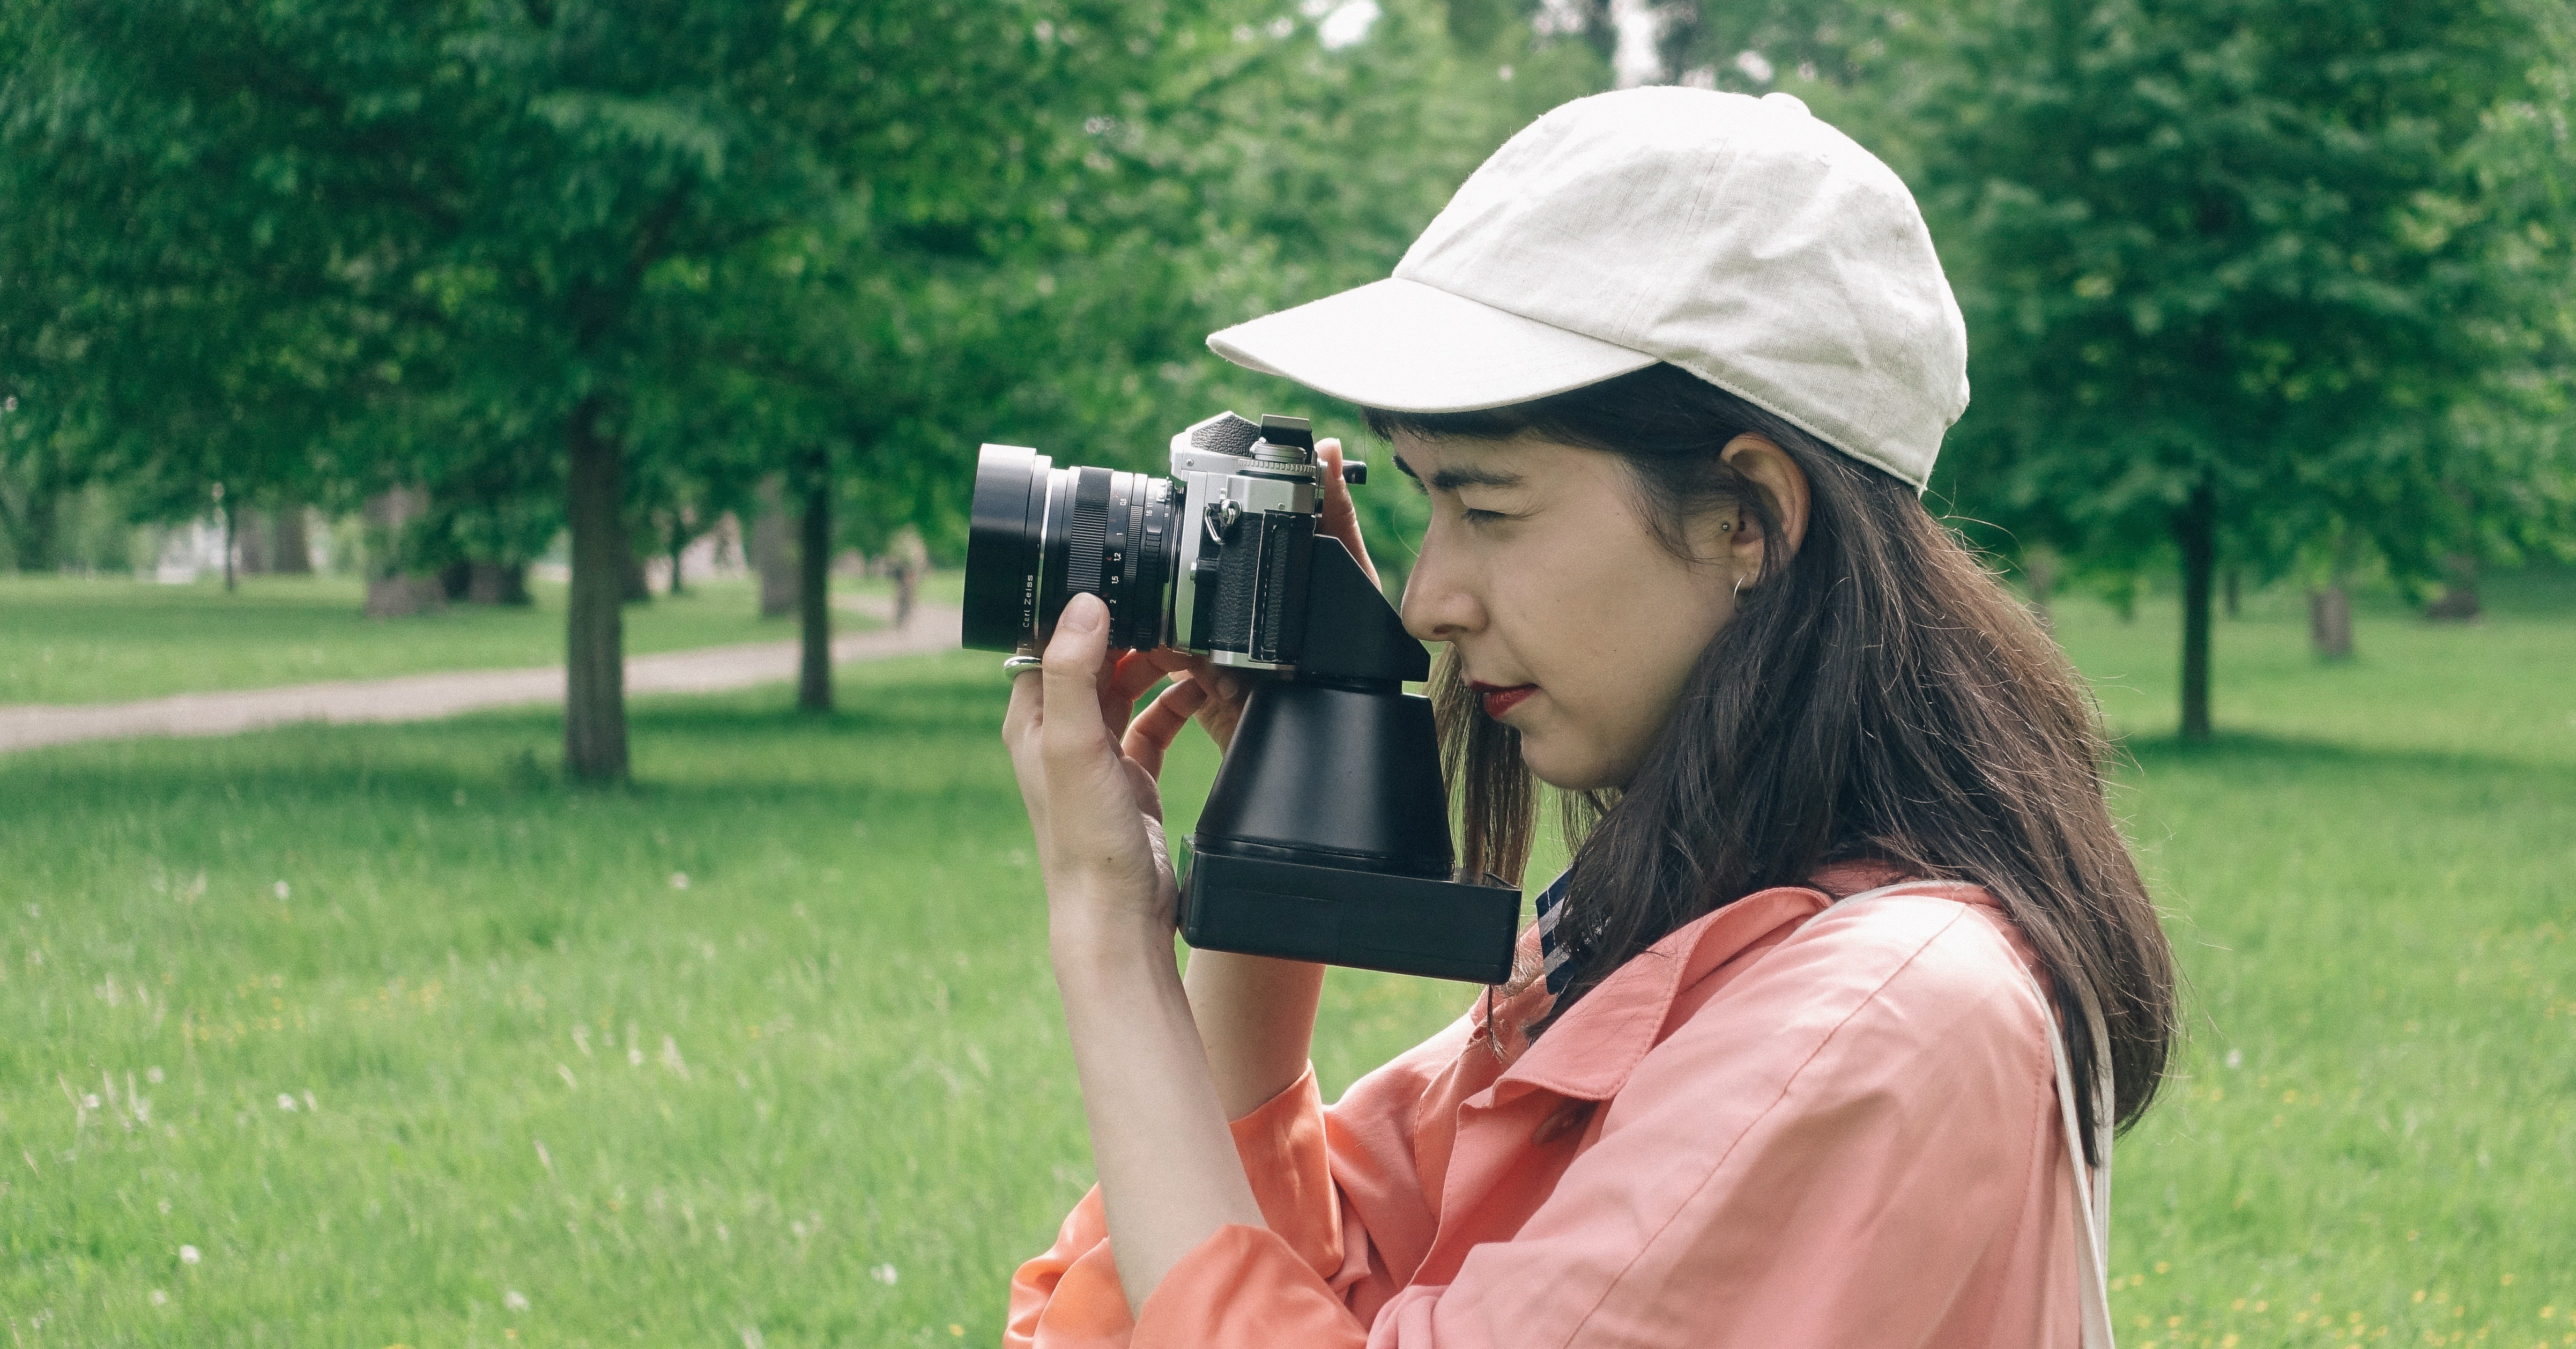 Photography, Photograph, Lawn, Girl, , Tree, Photograph, Photograph, photograph, photograph, green, grass, photography, tree, girl, photographer, plant, lawn, headgear